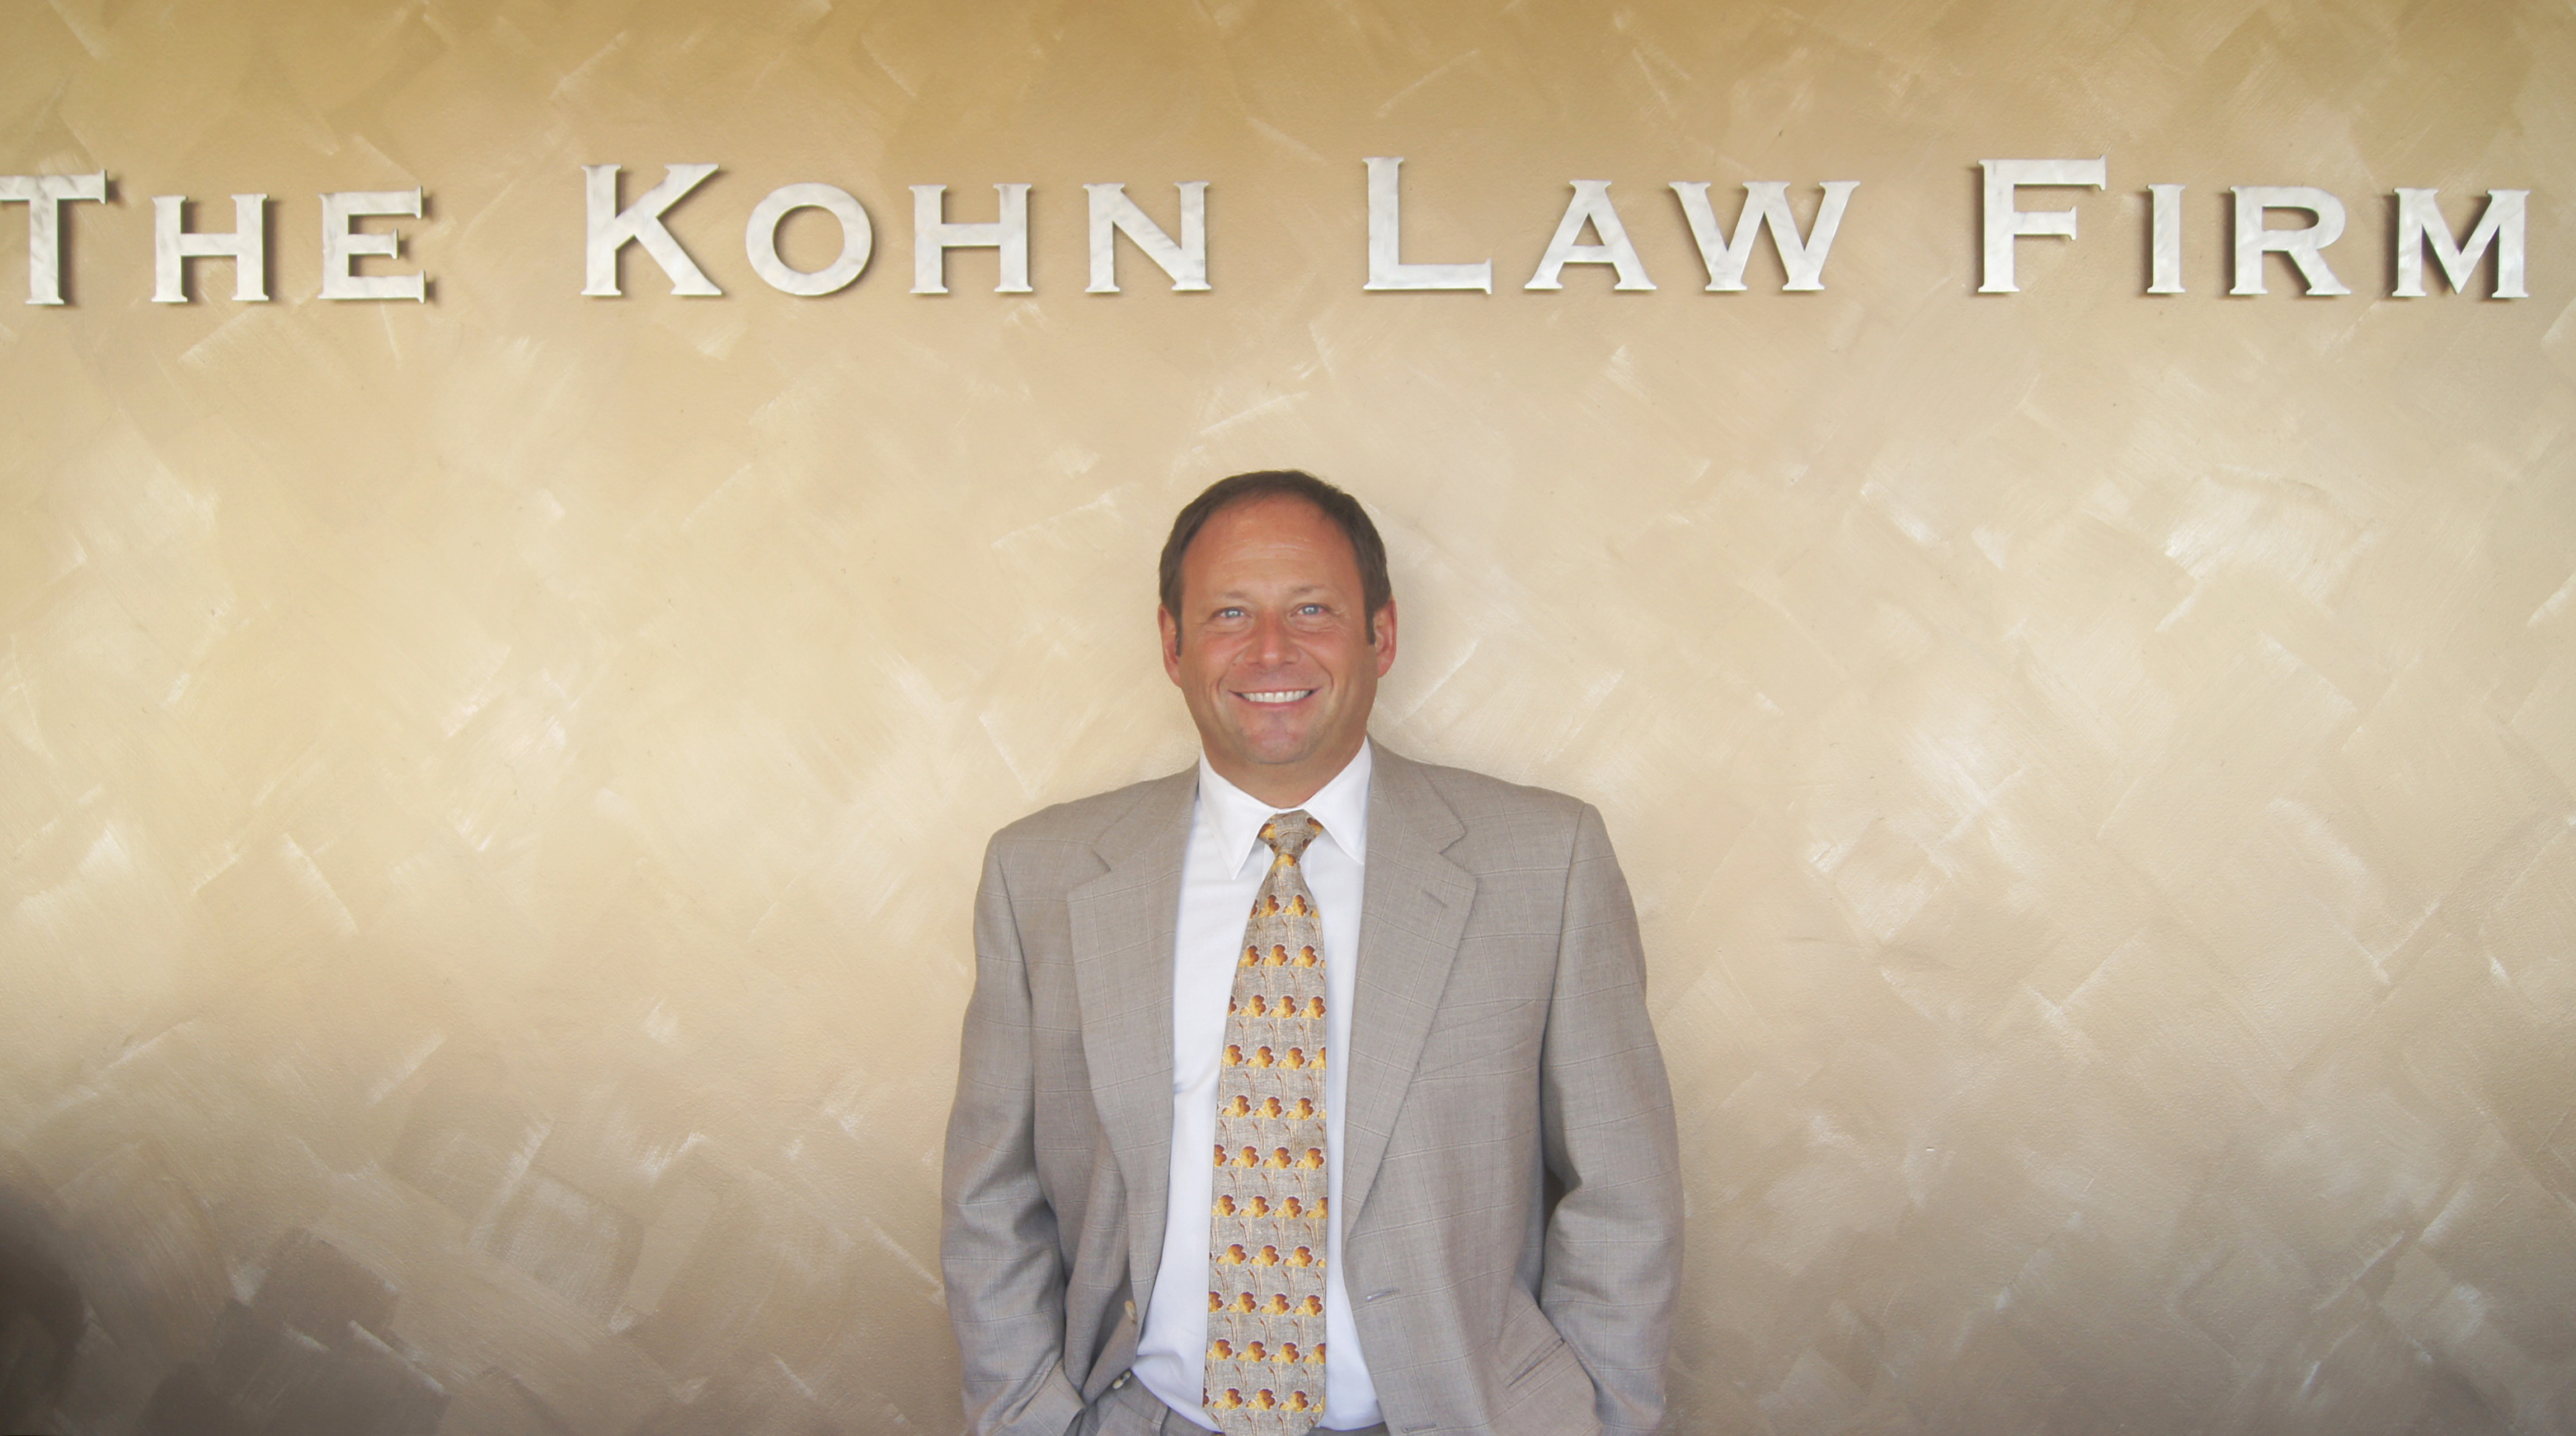 Kohn Law Firm - ad image